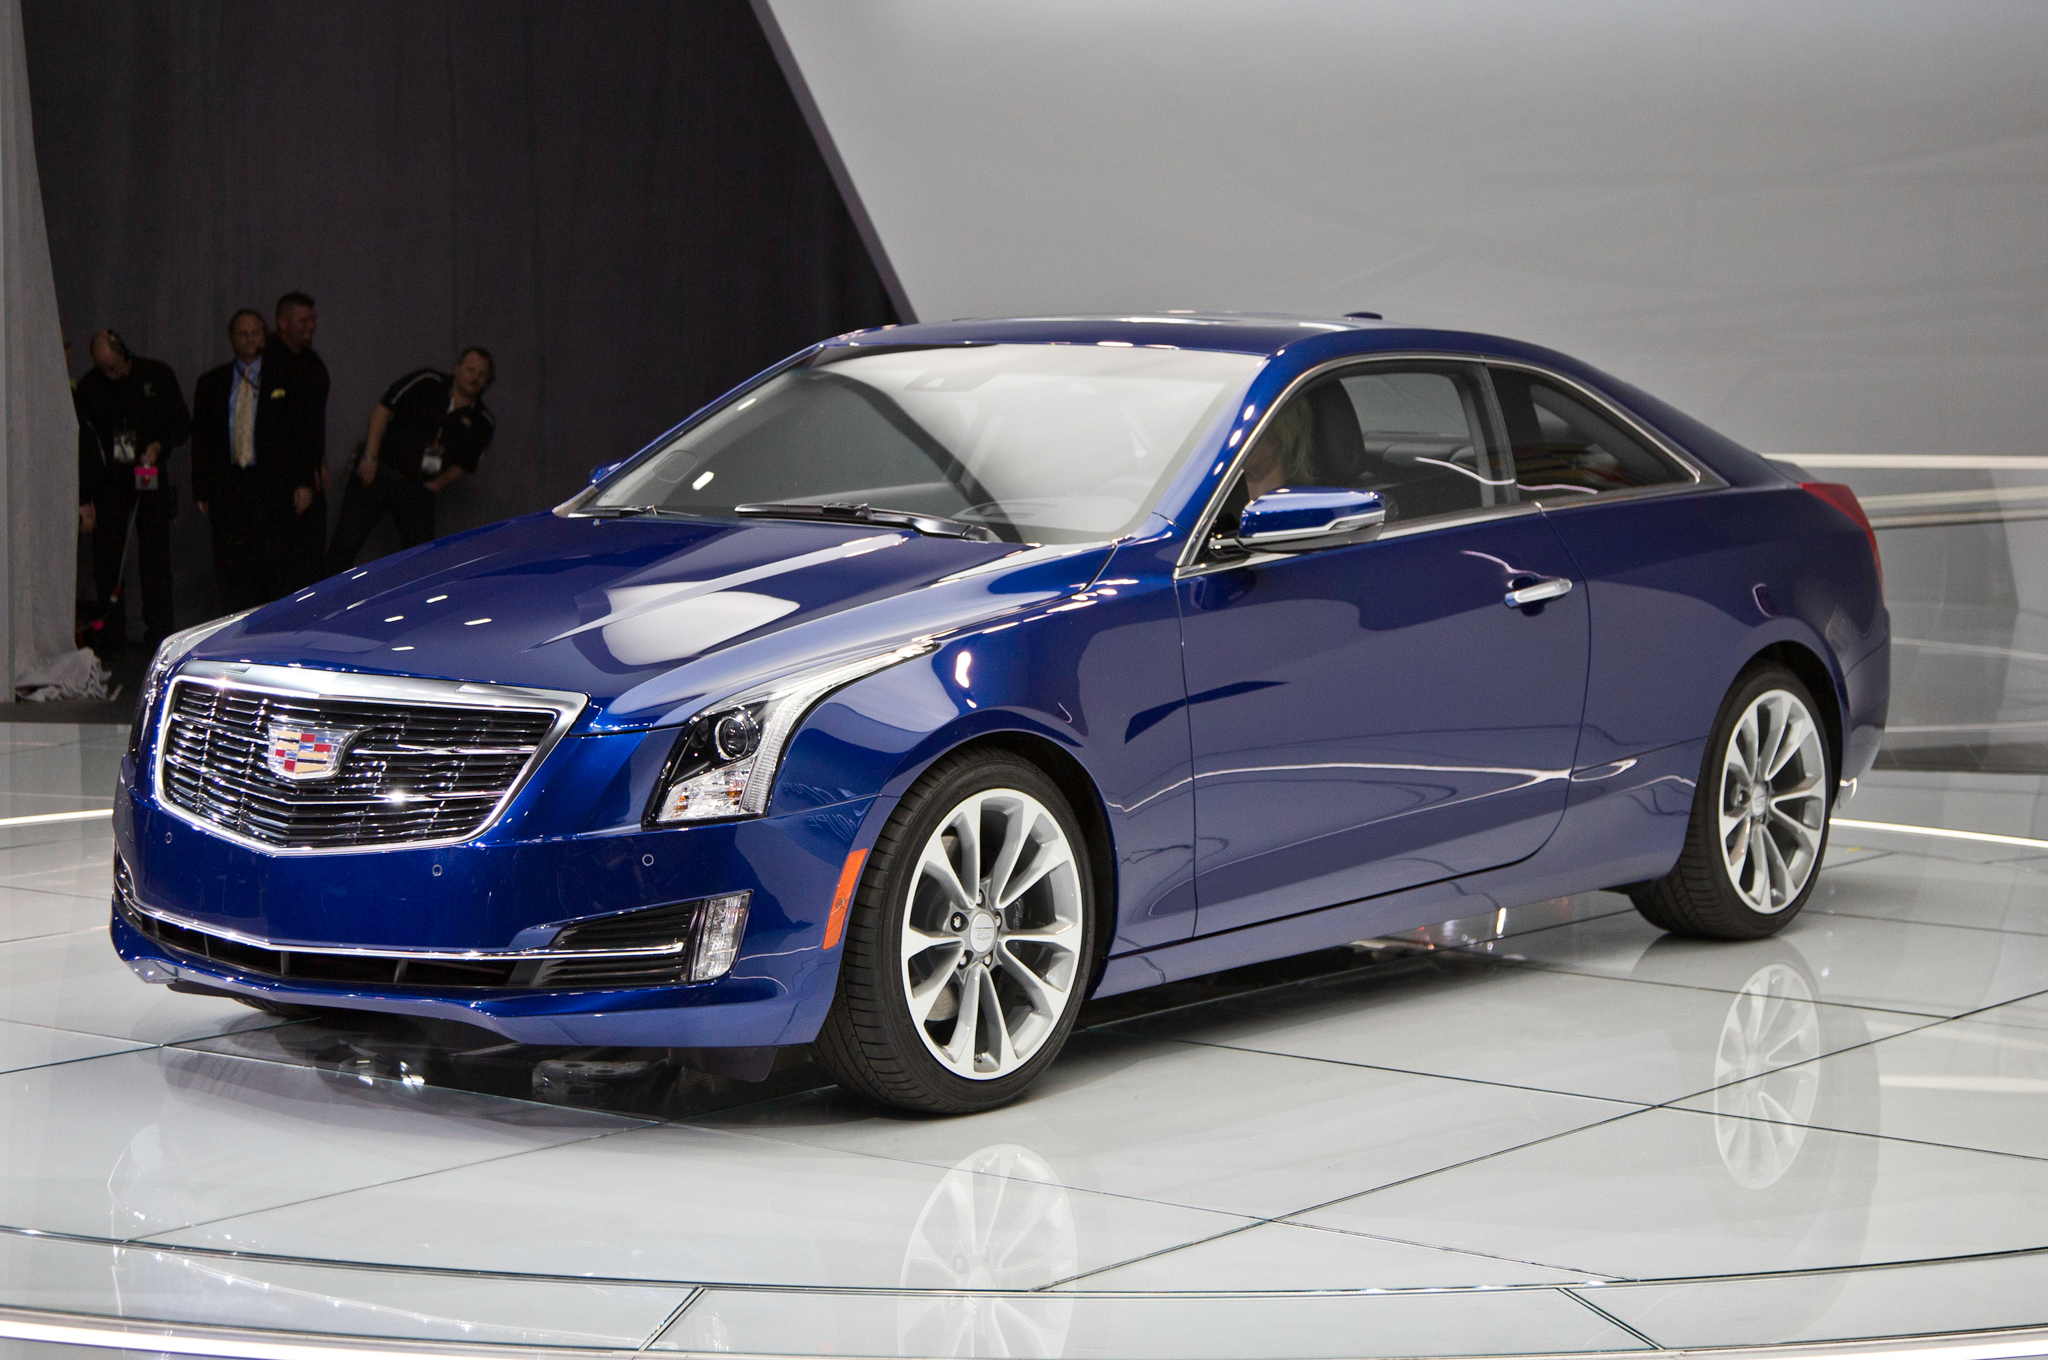 2015 Cadillac Ats Coupe Front View (View 18 of 21)